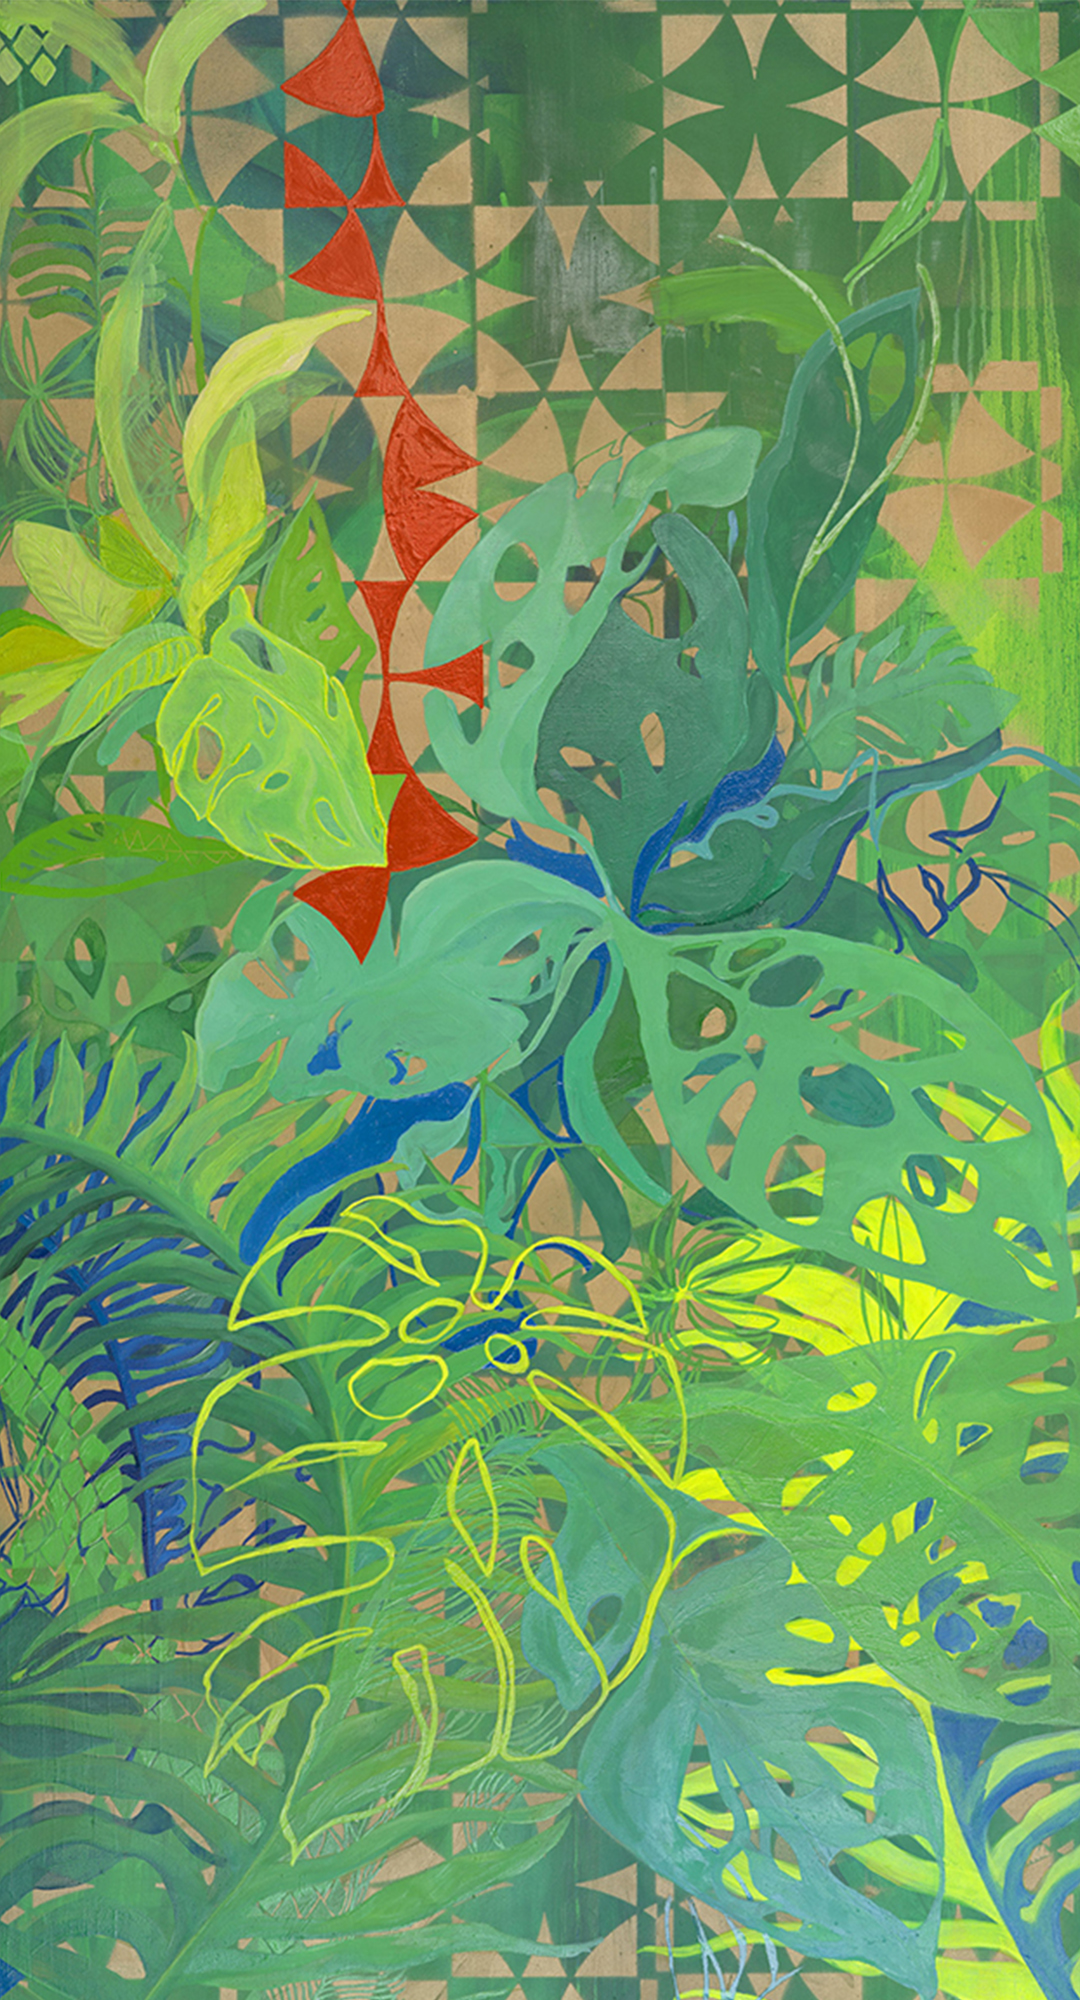 Tobagan Forest, 2019 Bryony Benge Abbott Oil and spray paint on board, 89 x 100 cm